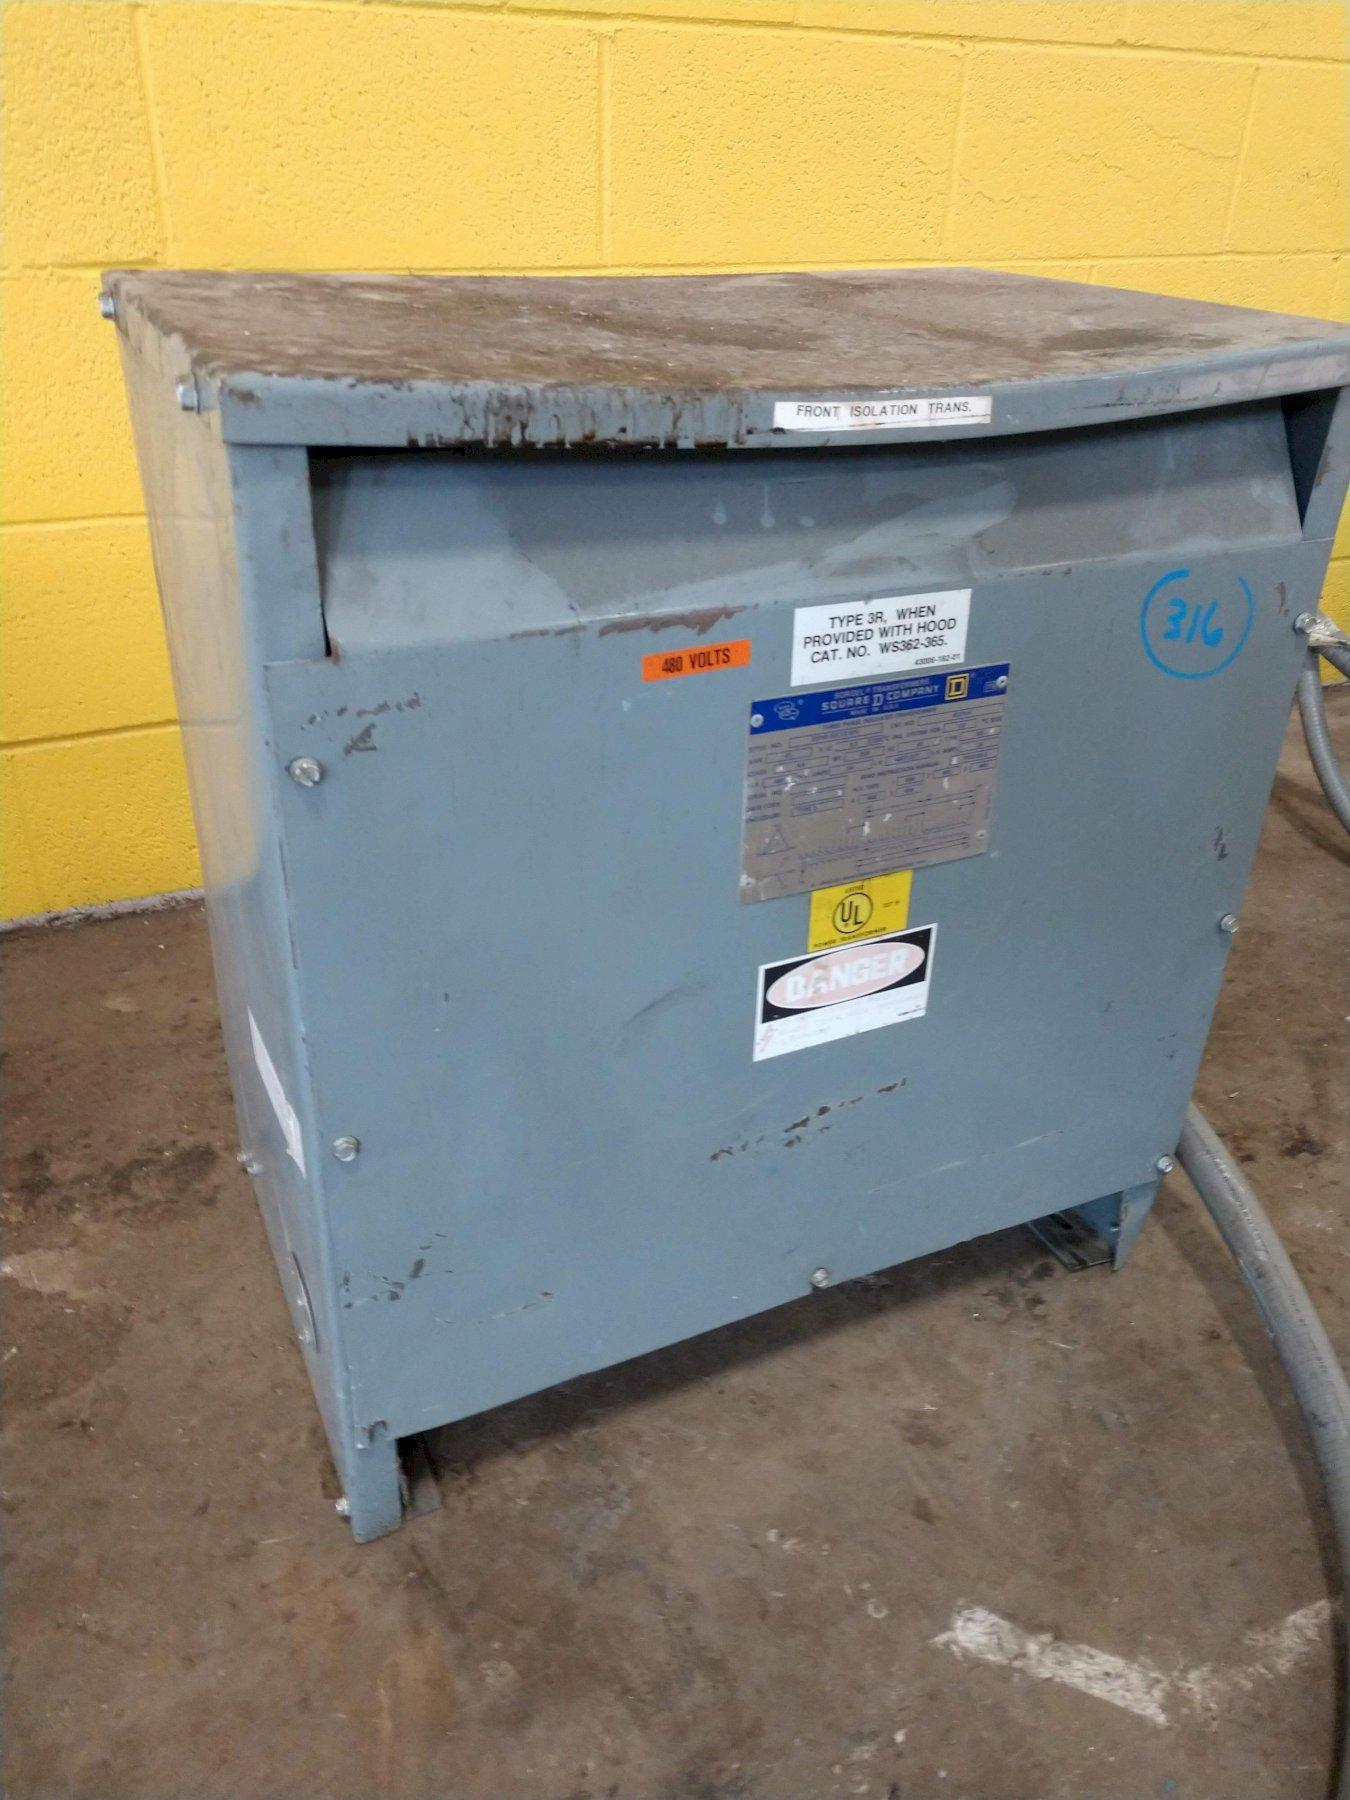 45 KVA SQUARE D 480 TO 480Y/277 VOLT ELECTRICAL TRANSFORMER : STOCK #11921